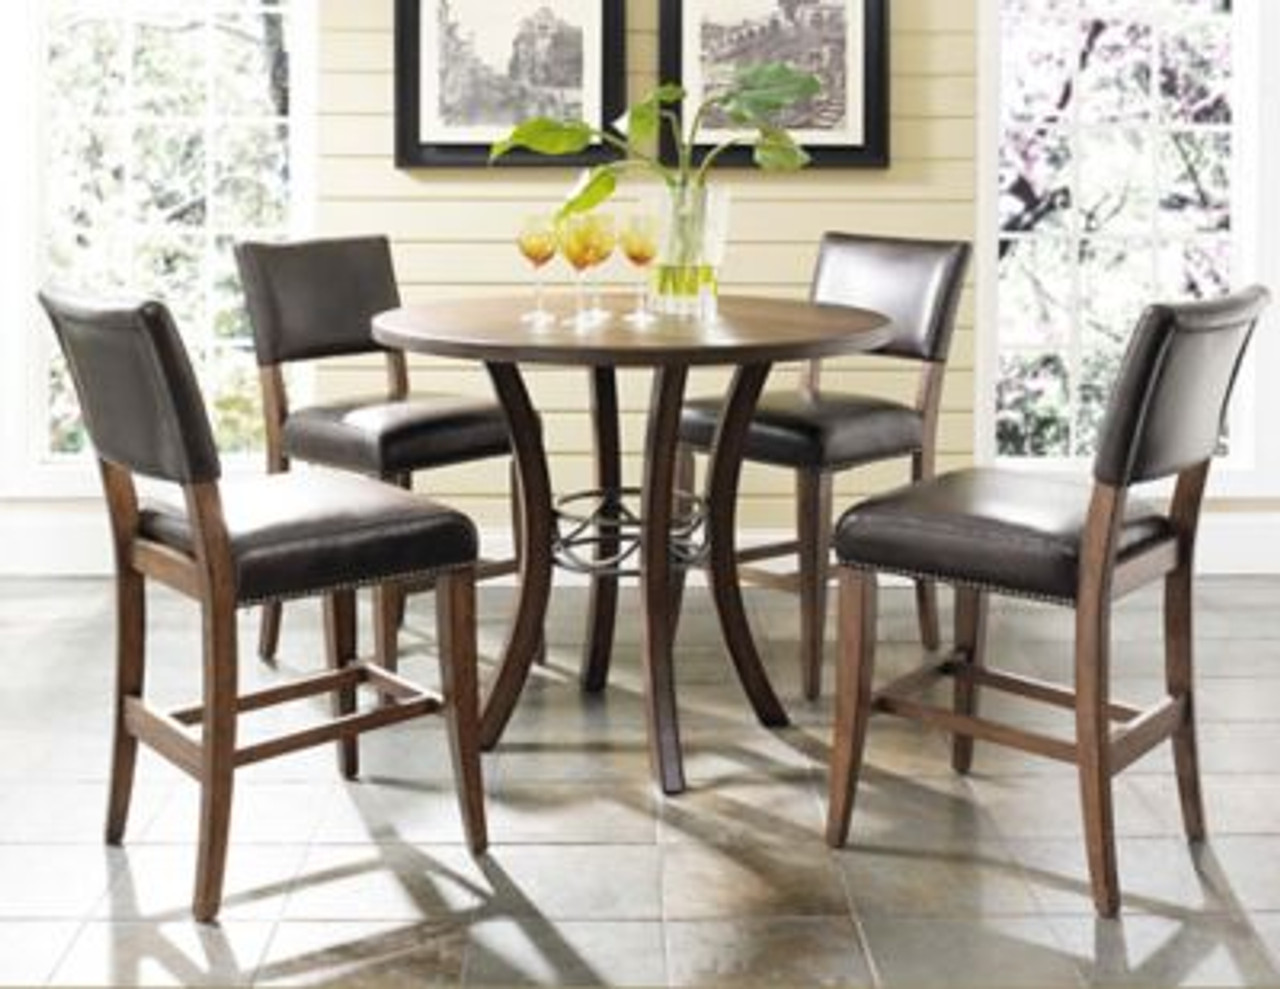 Cameron 5 Piece Counter Height Round Wood Dining Set With Parson Stool 4054203 Bon Ton